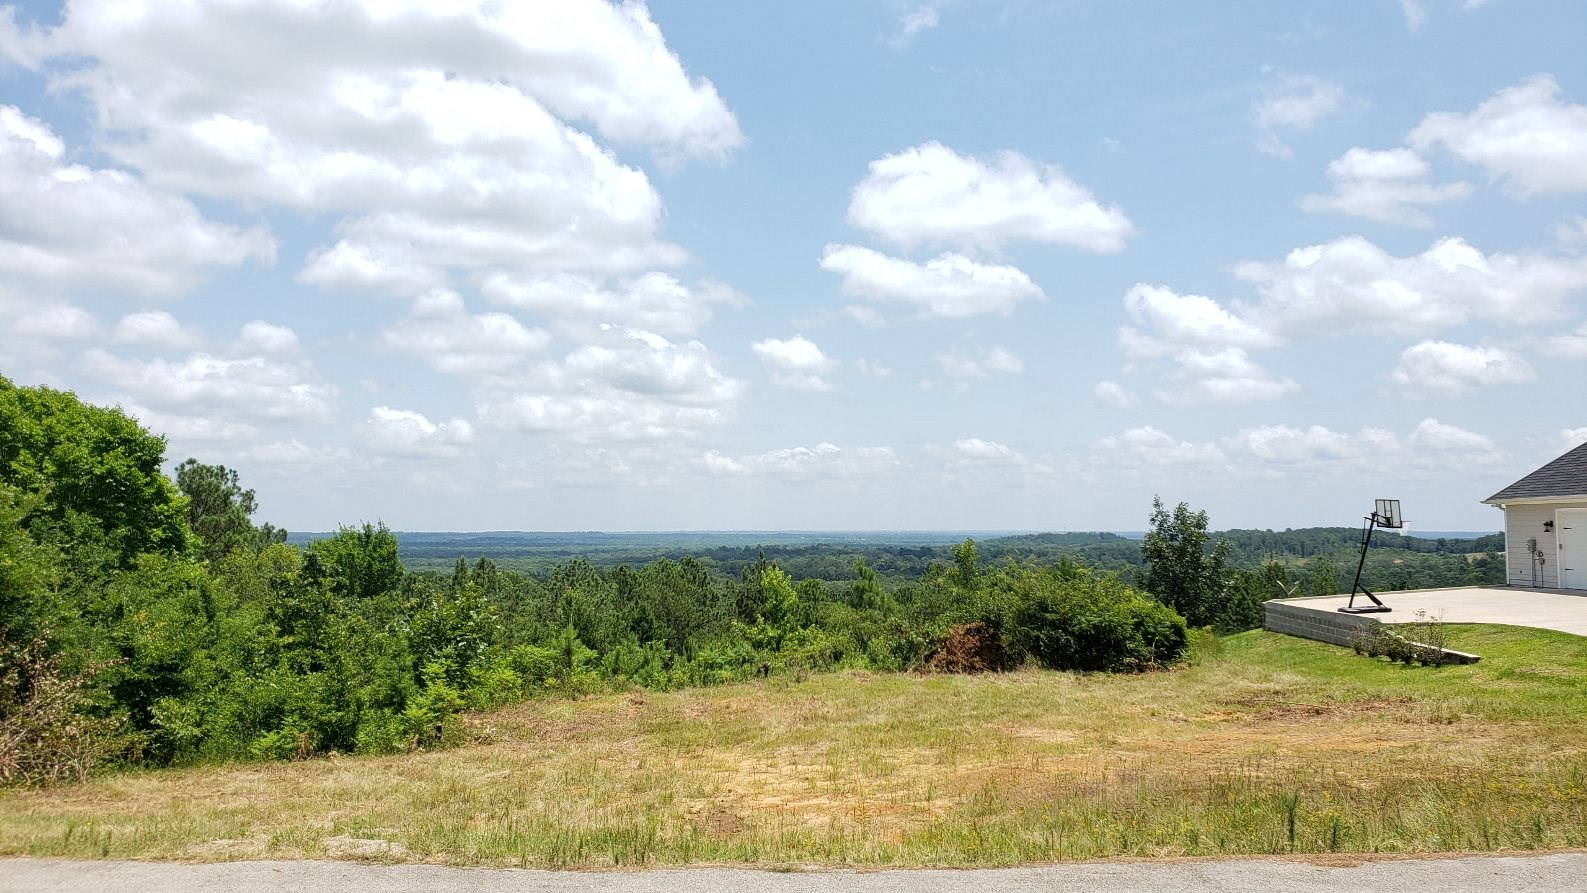 LOT FOR SALE WITH INCREDIBLE HILLTOP VIEW | EAST TX PROPERTY